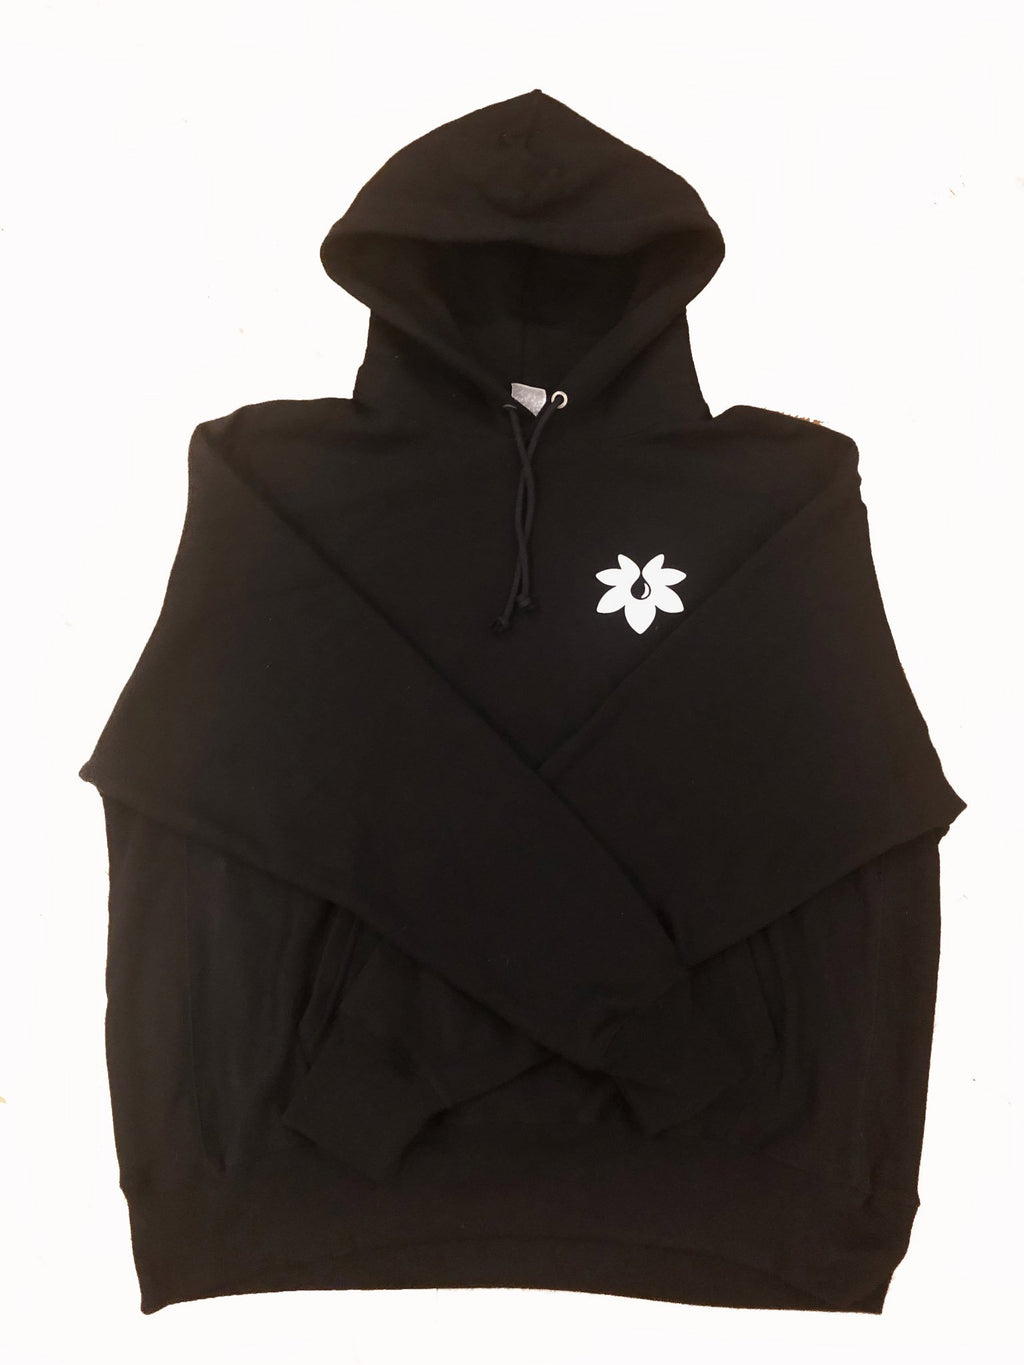 The Black Hemp Plant Hoodie